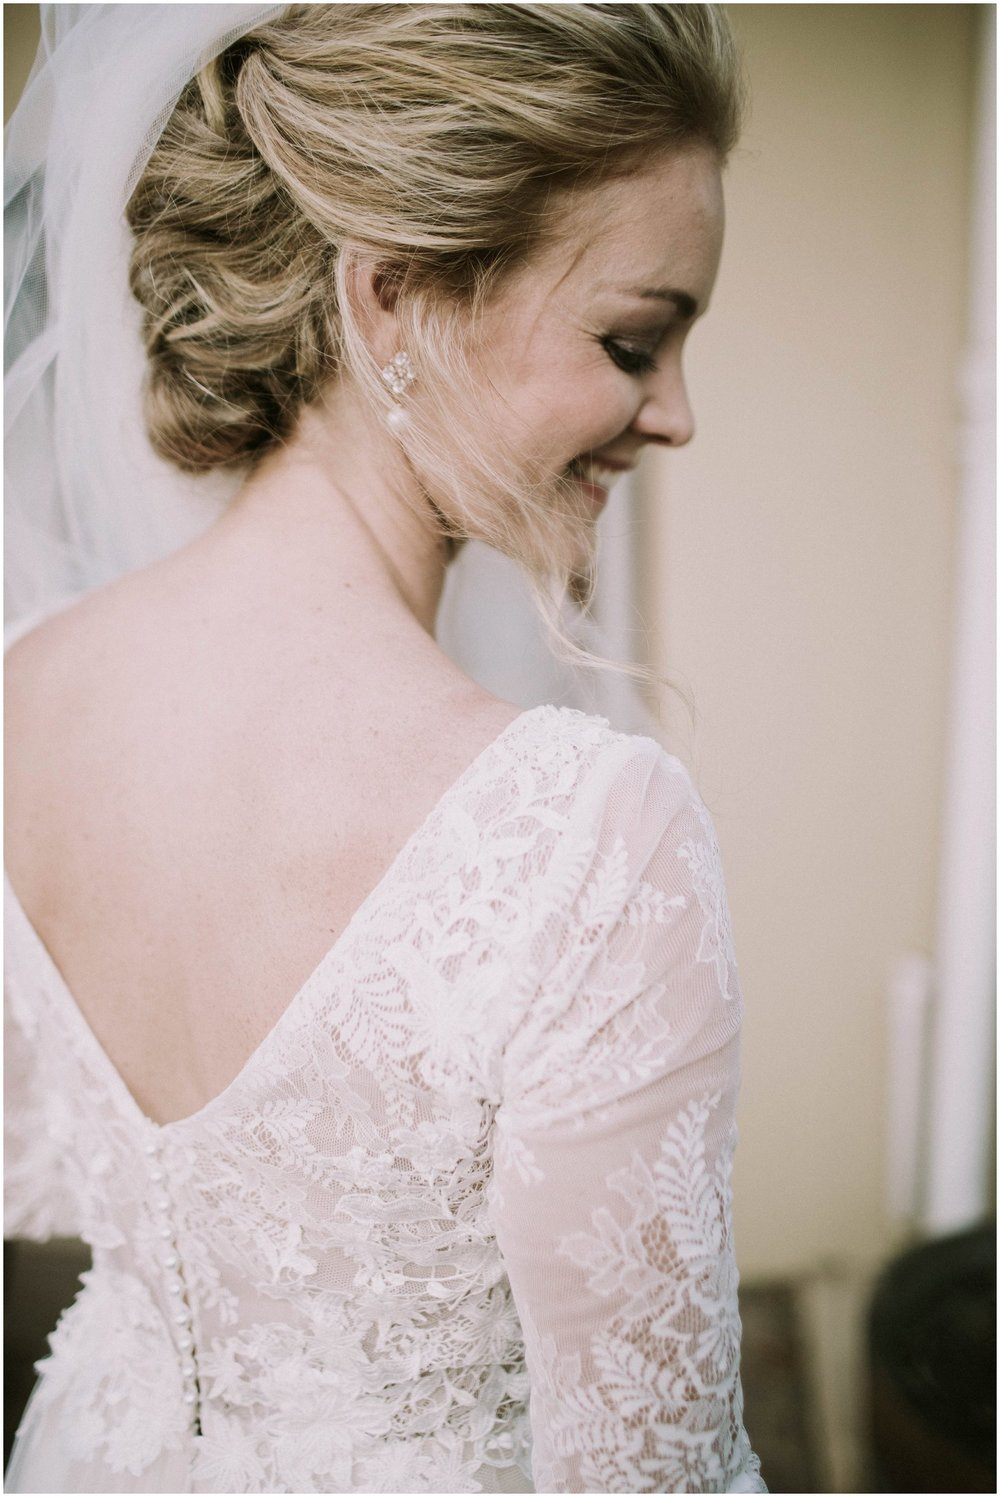 Top Wedding Photographer Cape Town South Africa Artistic Creative Documentary Wedding Photography Rue Kruger_0676.jpg